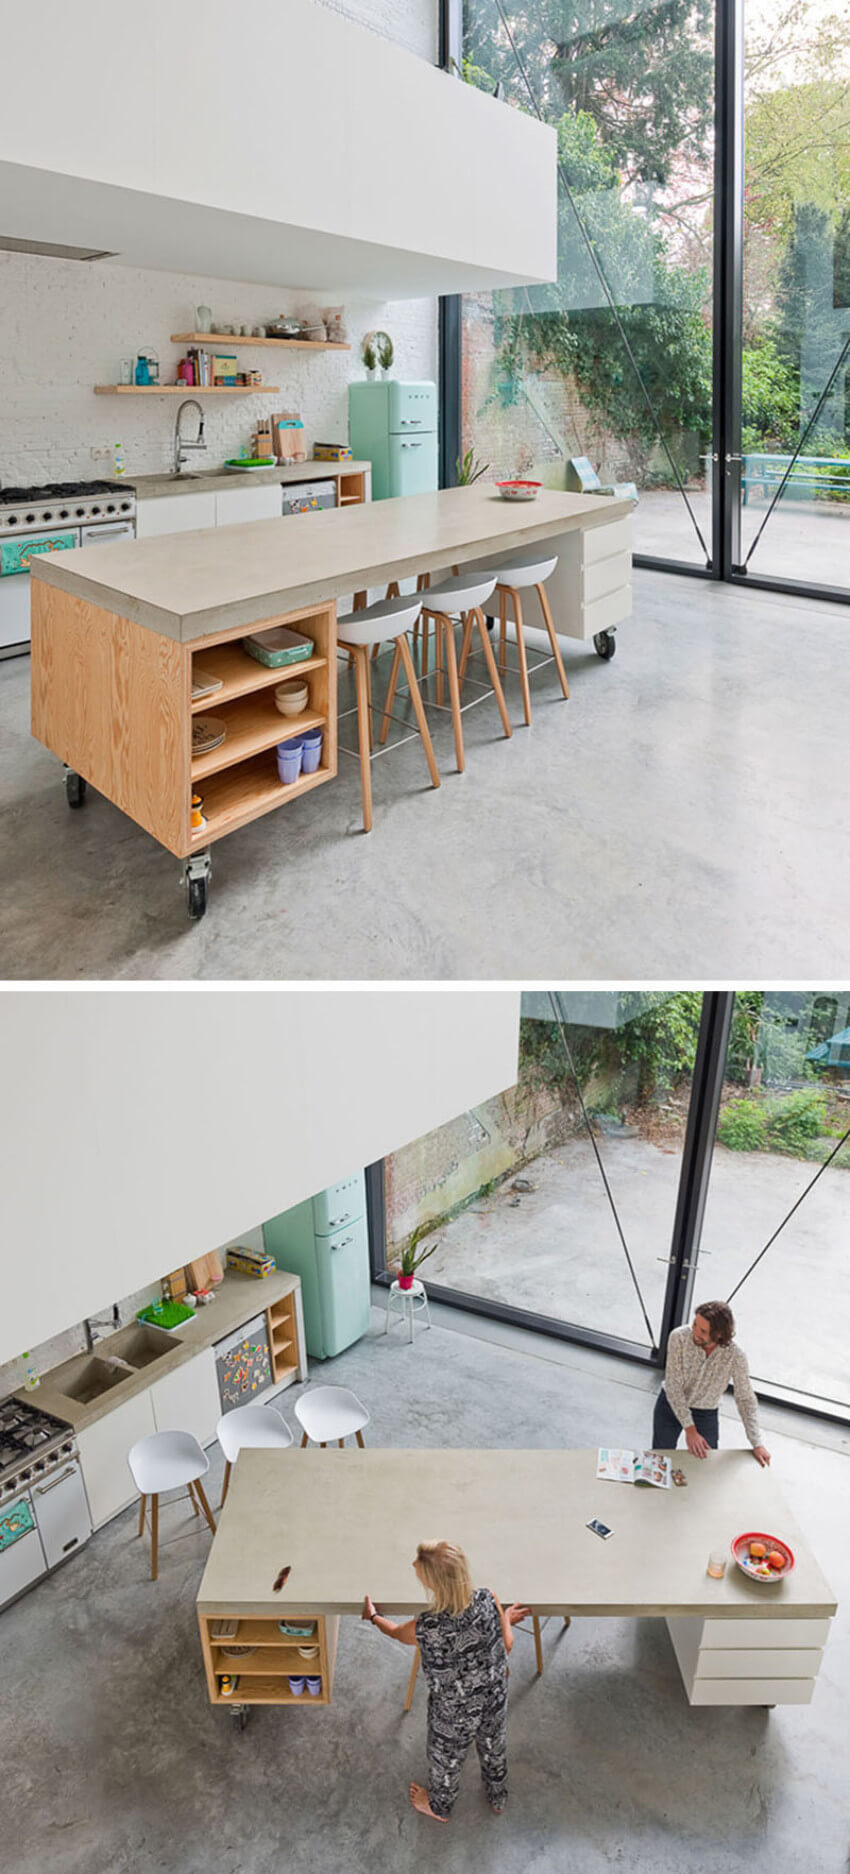 A movable kitchen island is also on the ergonomic design list.